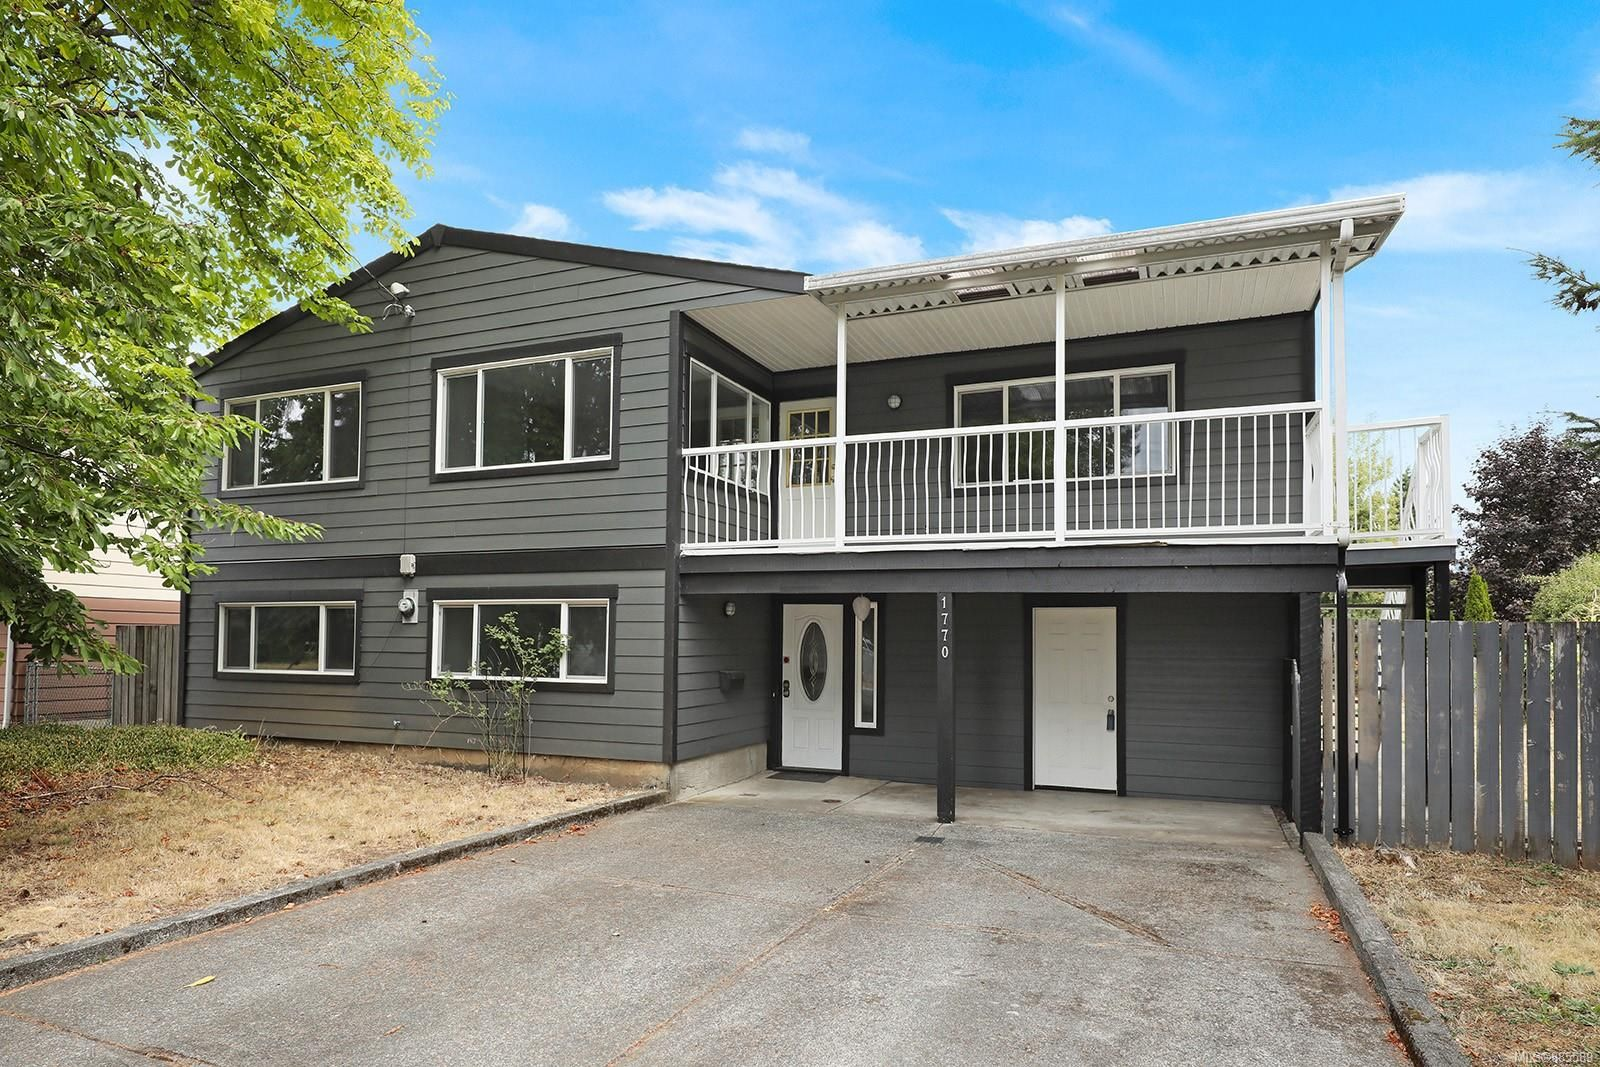 Main Photo: 1770 Urquhart Ave in : CV Courtenay City House for sale (Comox Valley)  : MLS®# 885589